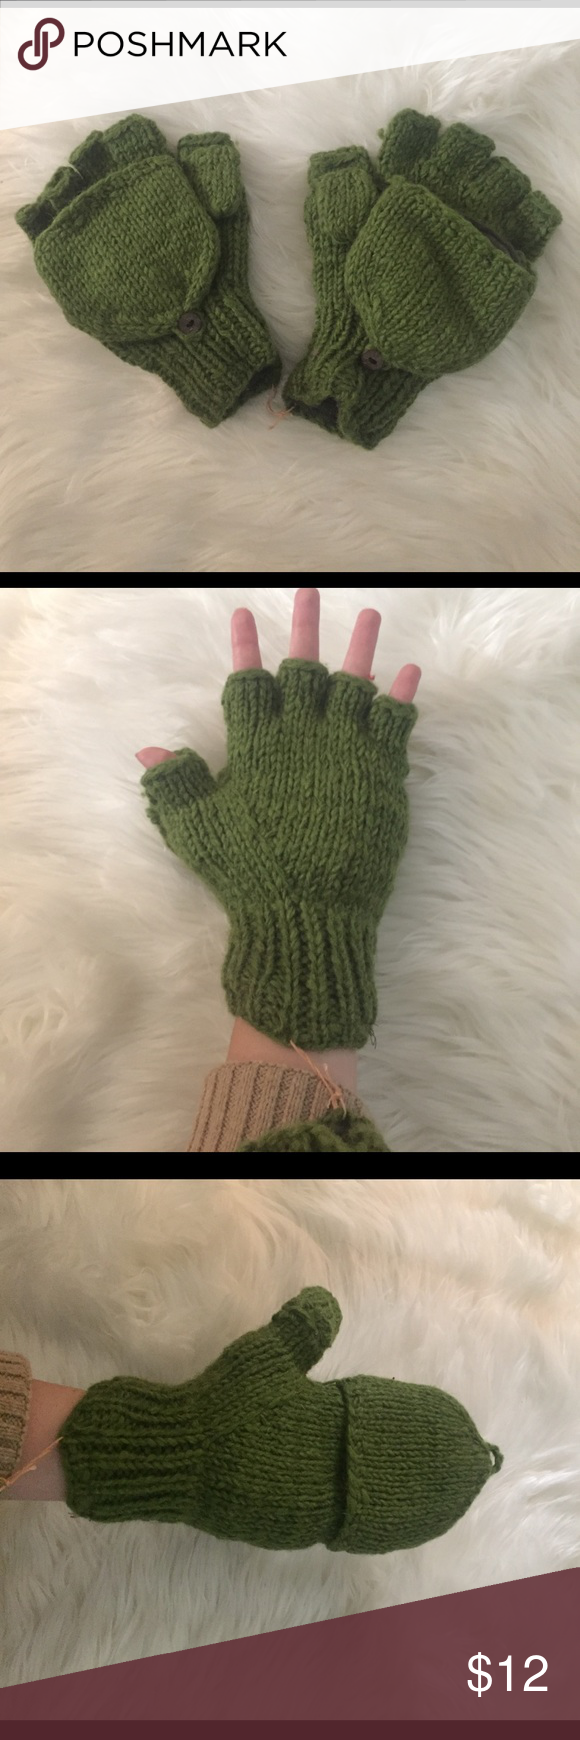 Never Worn Convertible Gloves Green knit 100% wool fingerless gloves that convert to mittens. The fleece insides make this extremely warm and perfect for winter! Accessories Gloves & Mittens